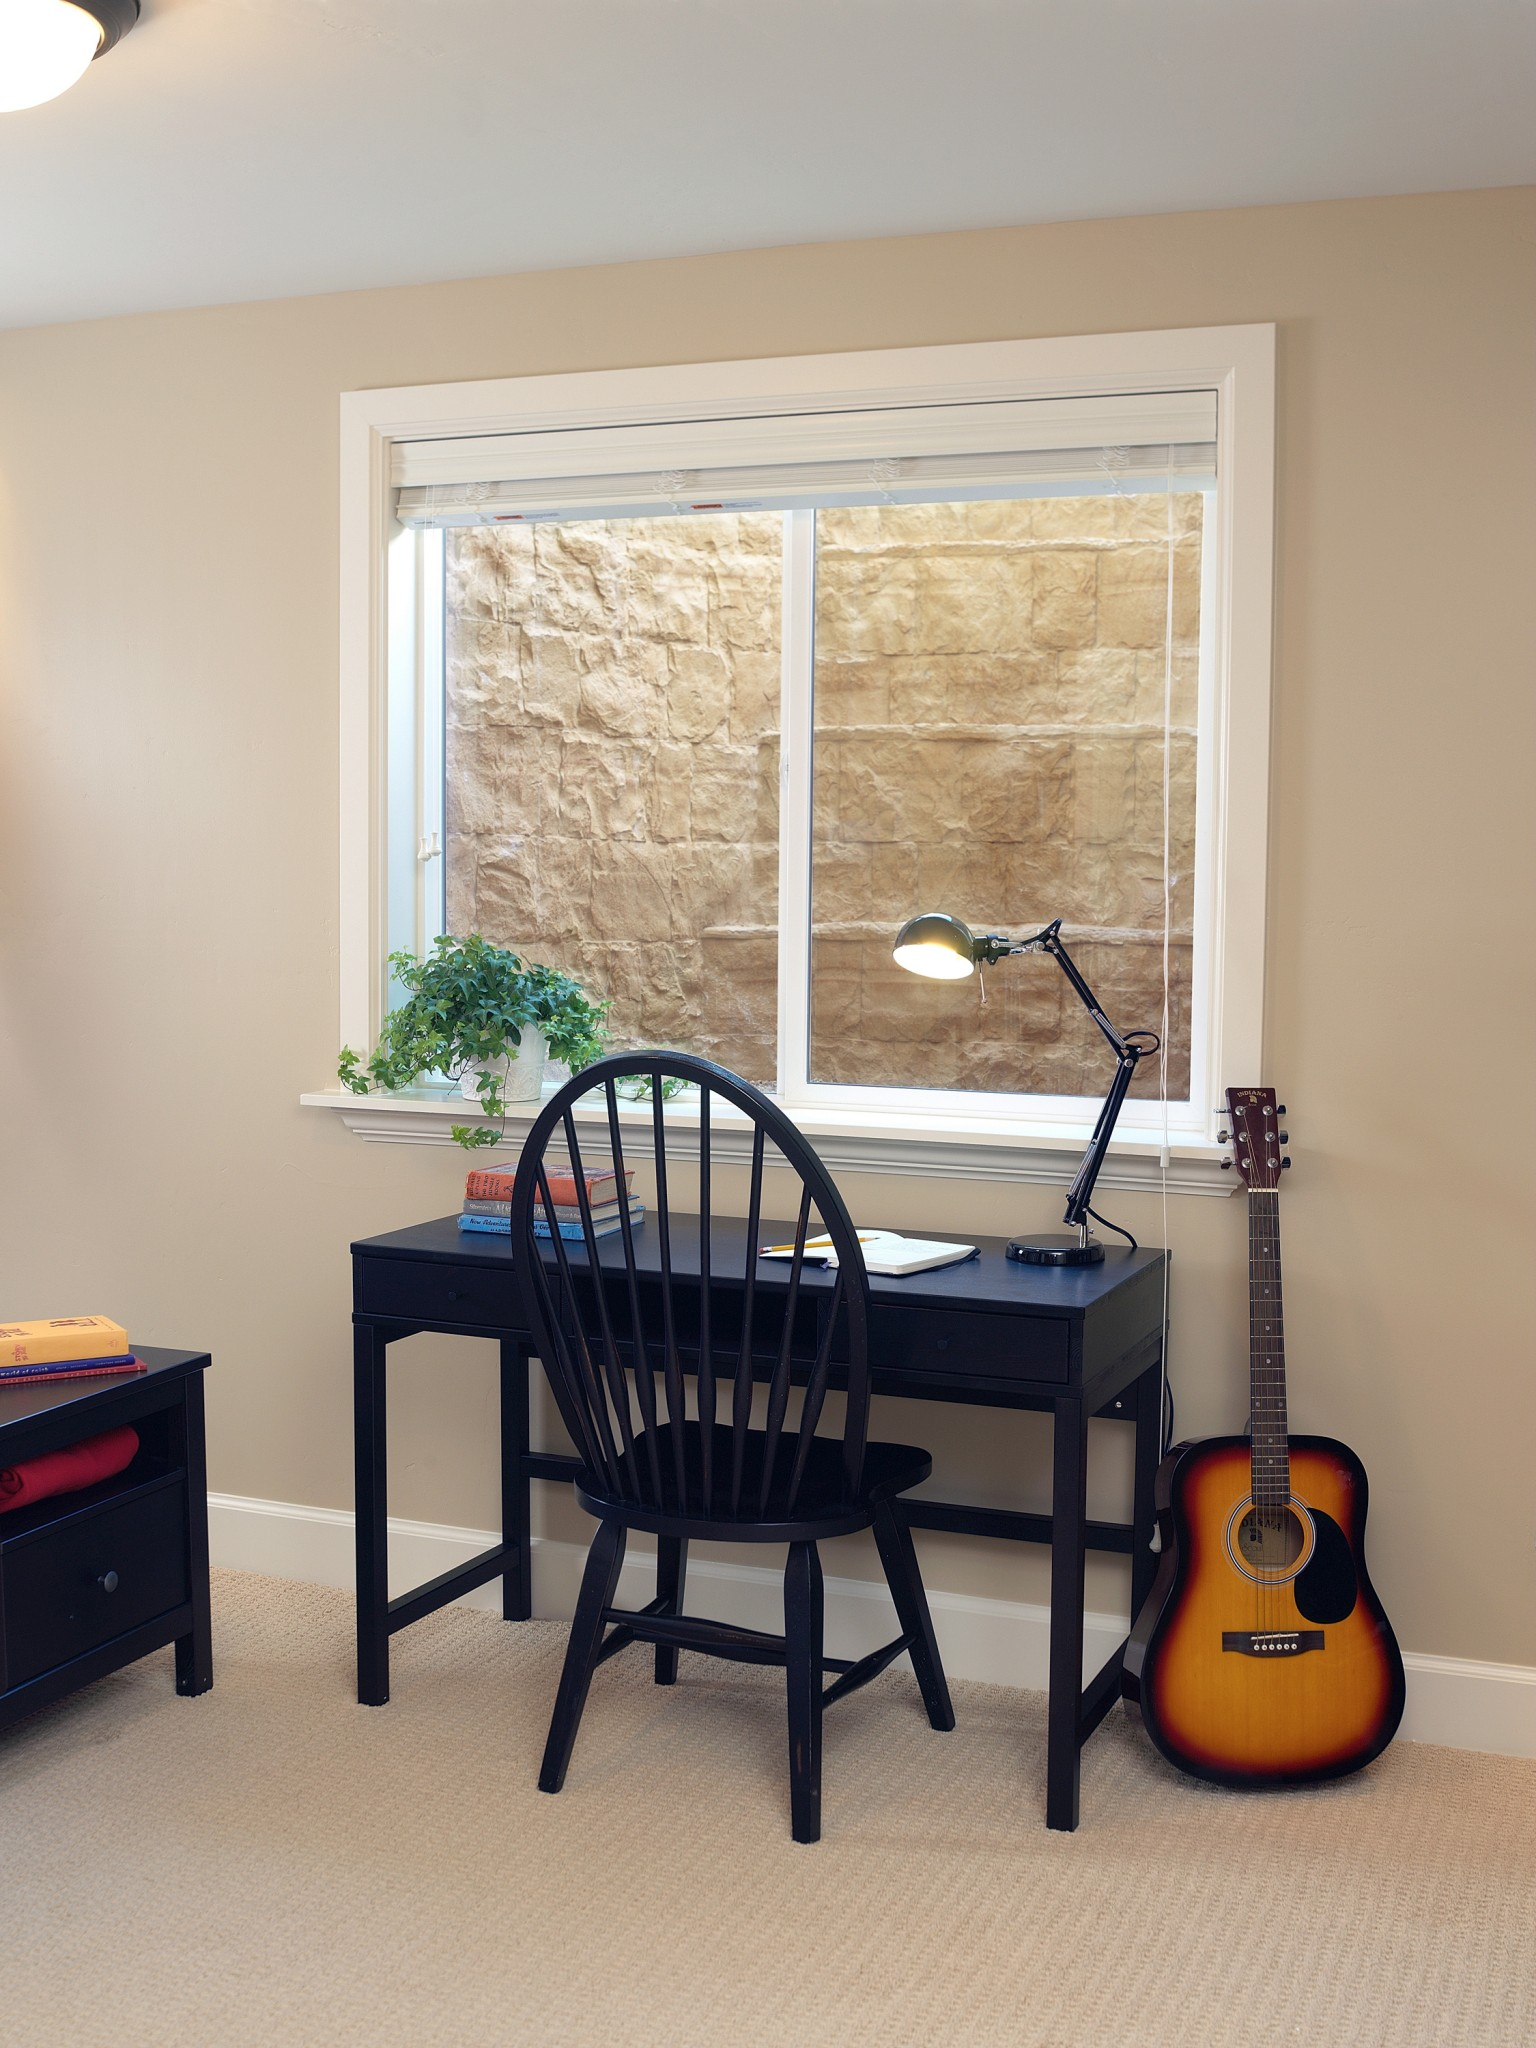 basement desk in front of Rockwell series egress window well built by RockWell egress window wells